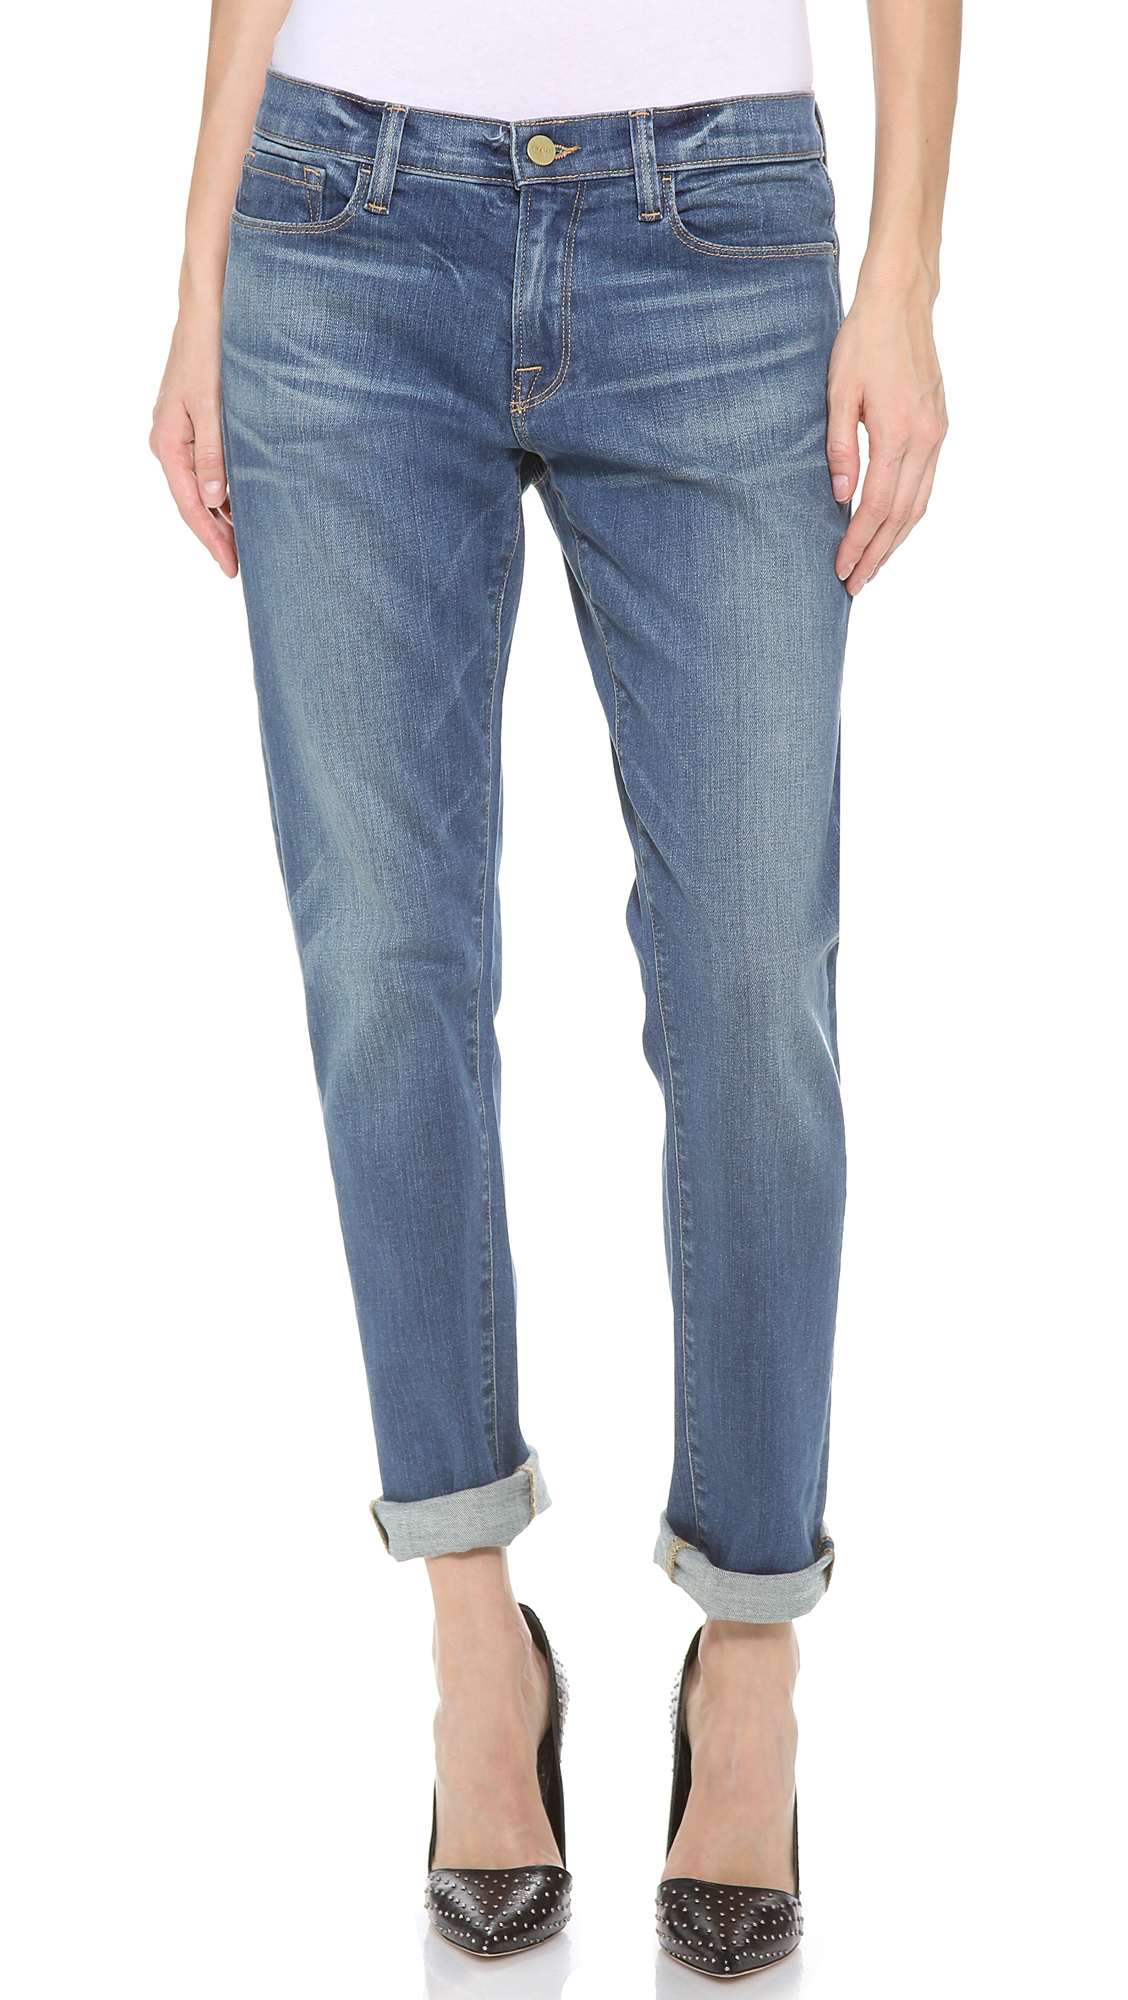 Simple Frame Denim Le Garcon | Splendiferous Soft Stretchy Jeans